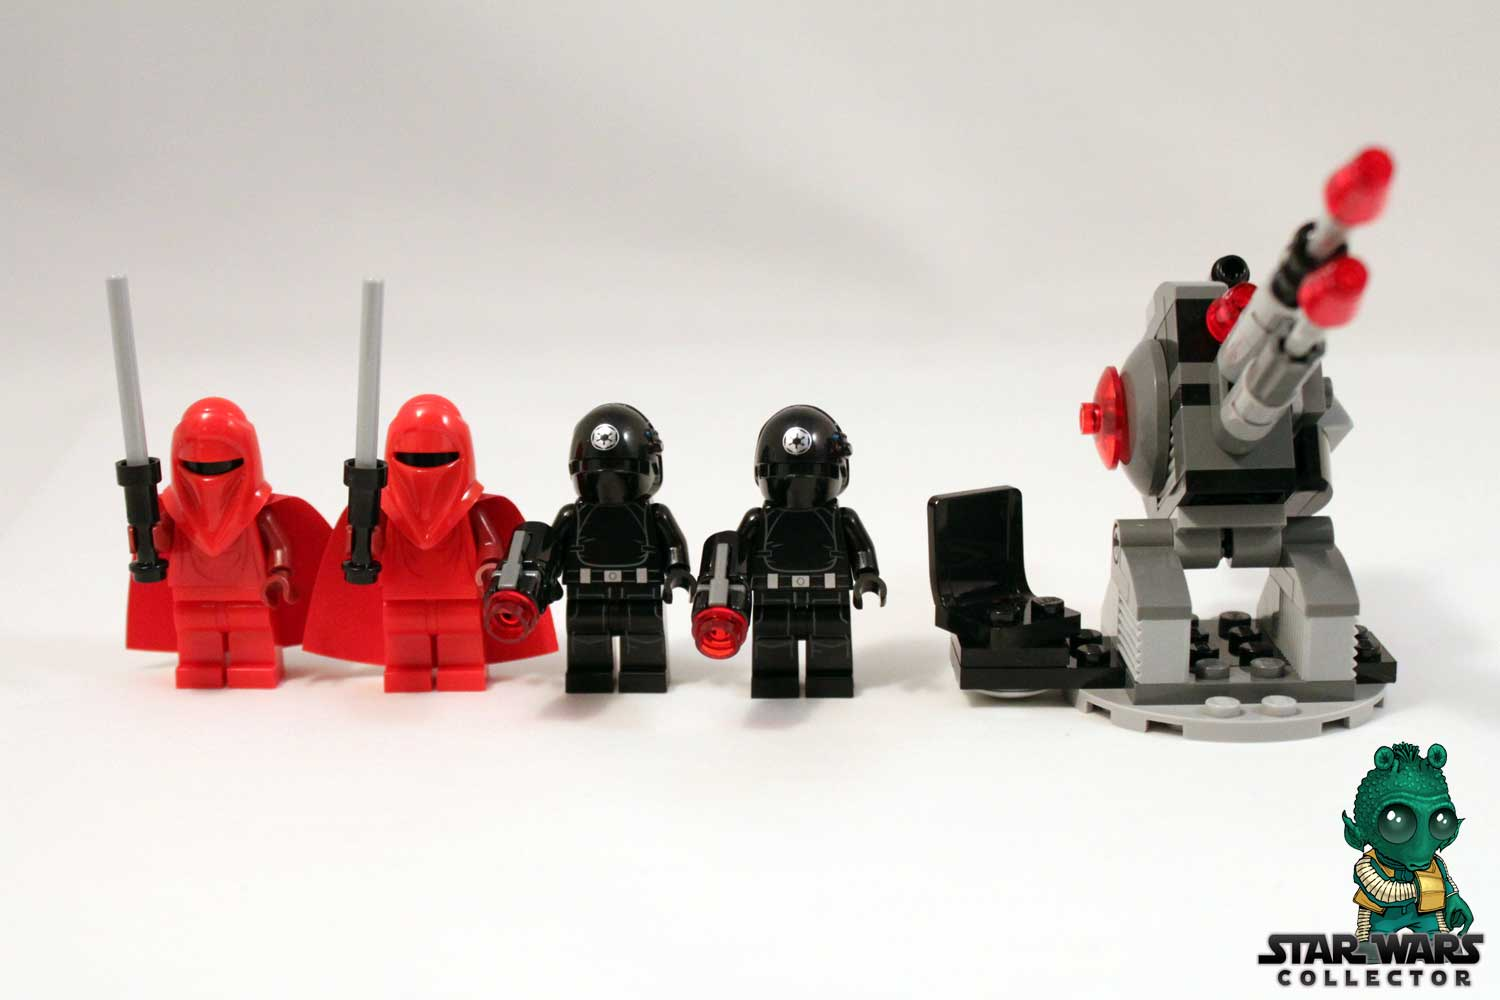 LEGO Star Wars 75034 Death Star Troopers